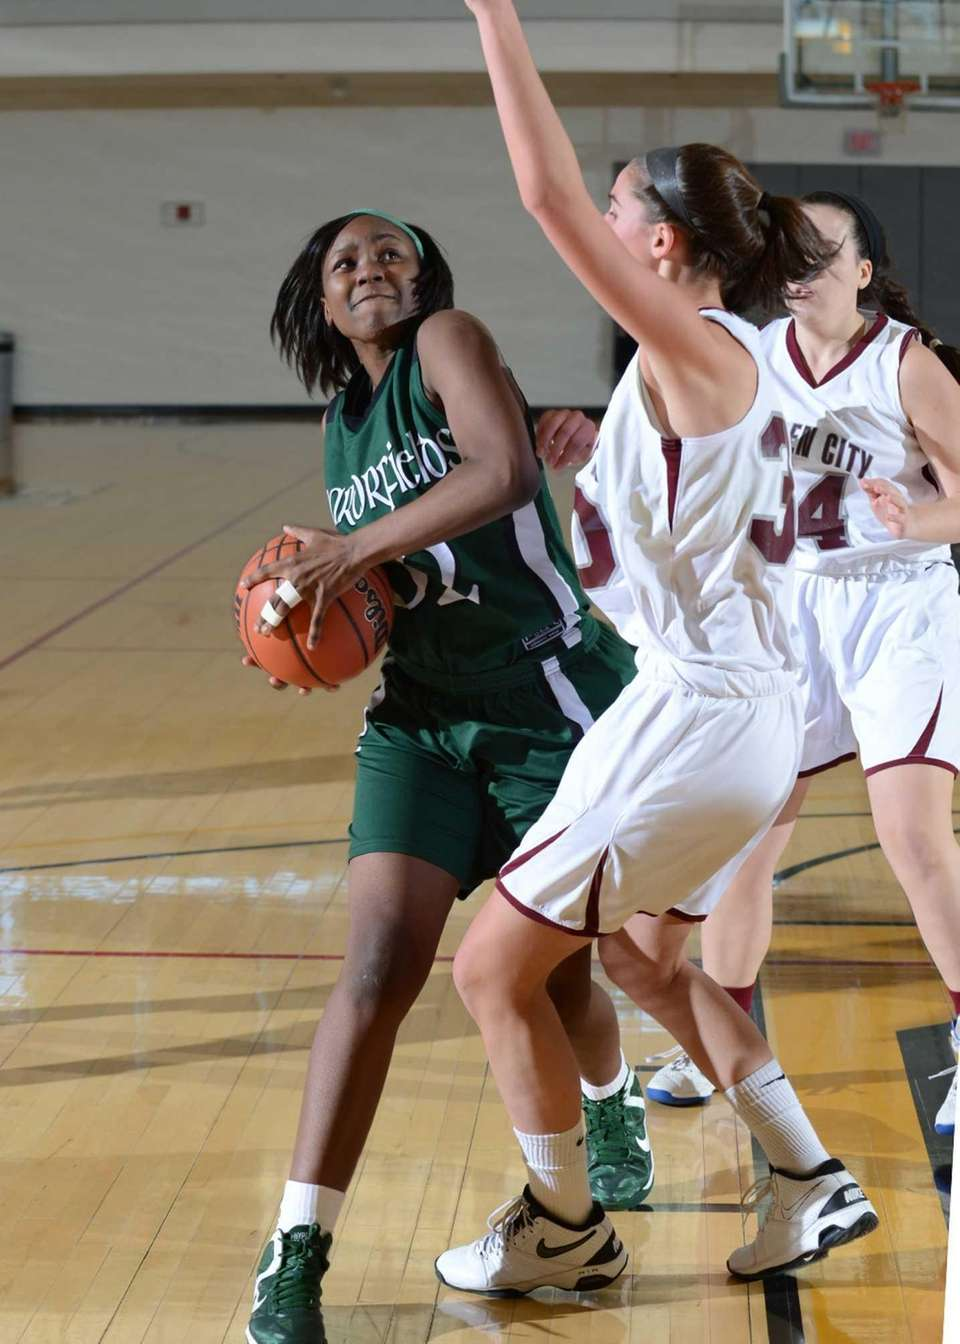 Harborfield's Donasja Scott (left) under pressure goes up